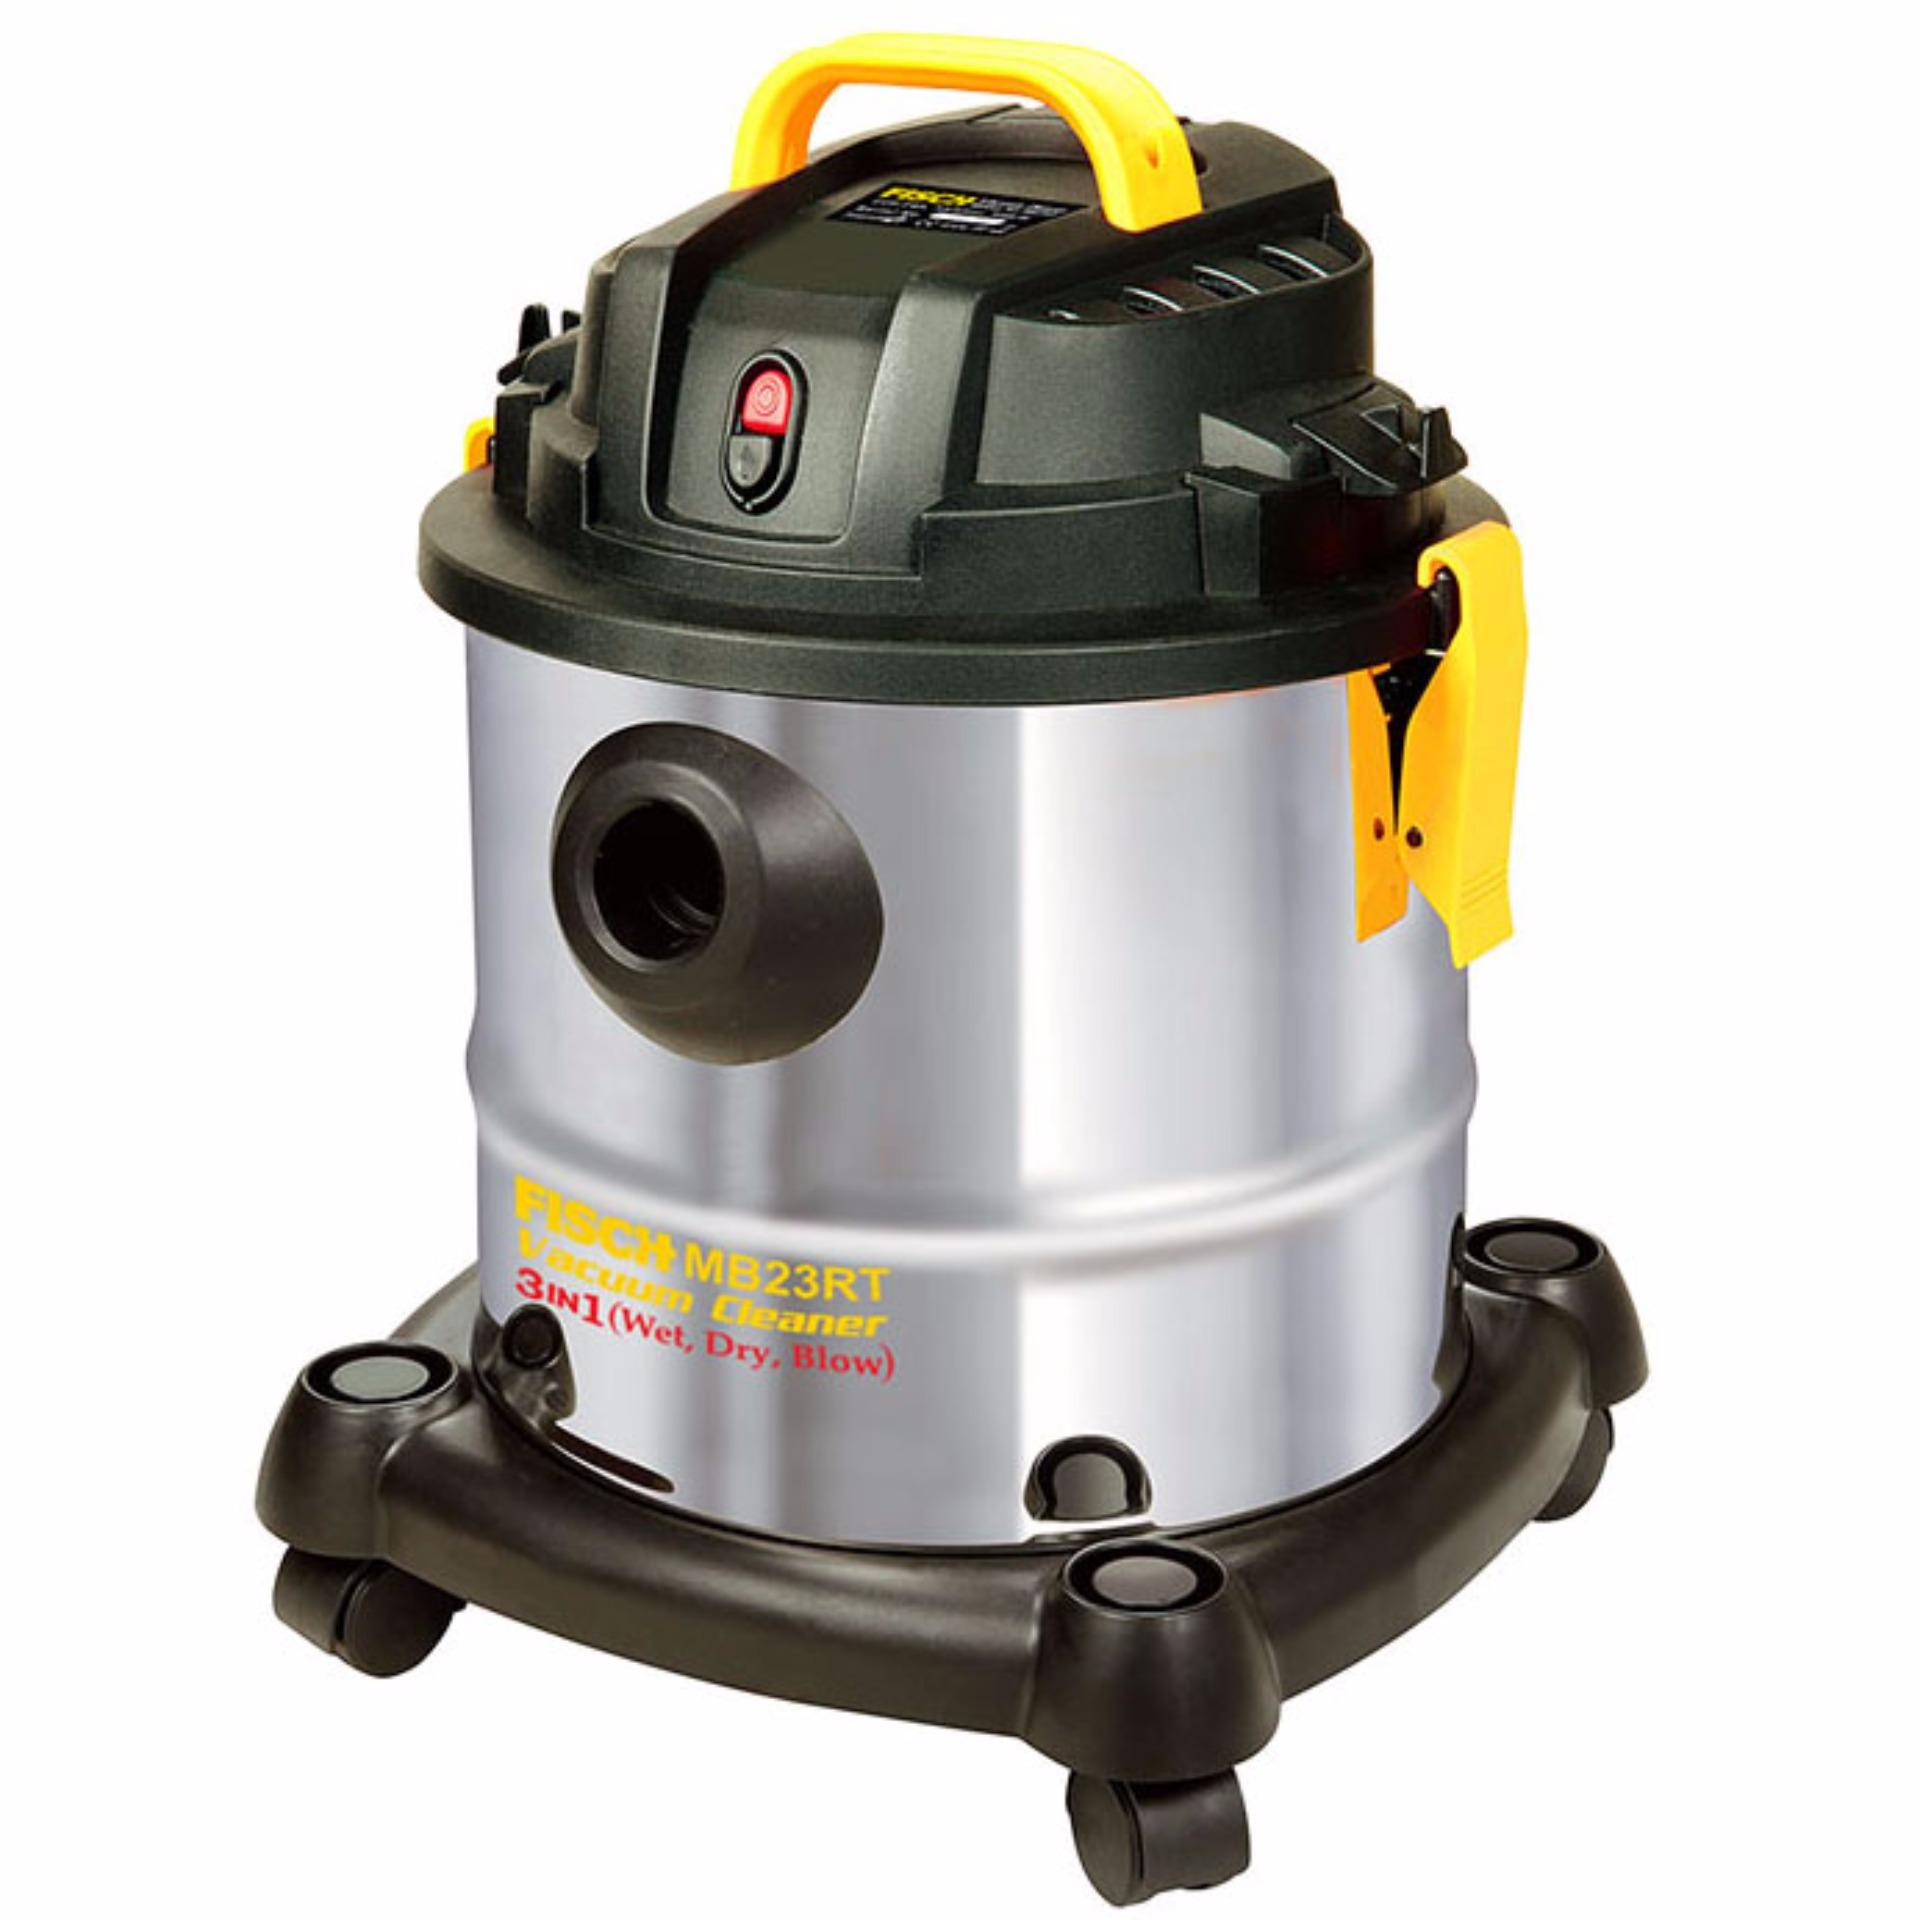 FISCH MB23RT Vacuum Cleaner Full Stainless Steel